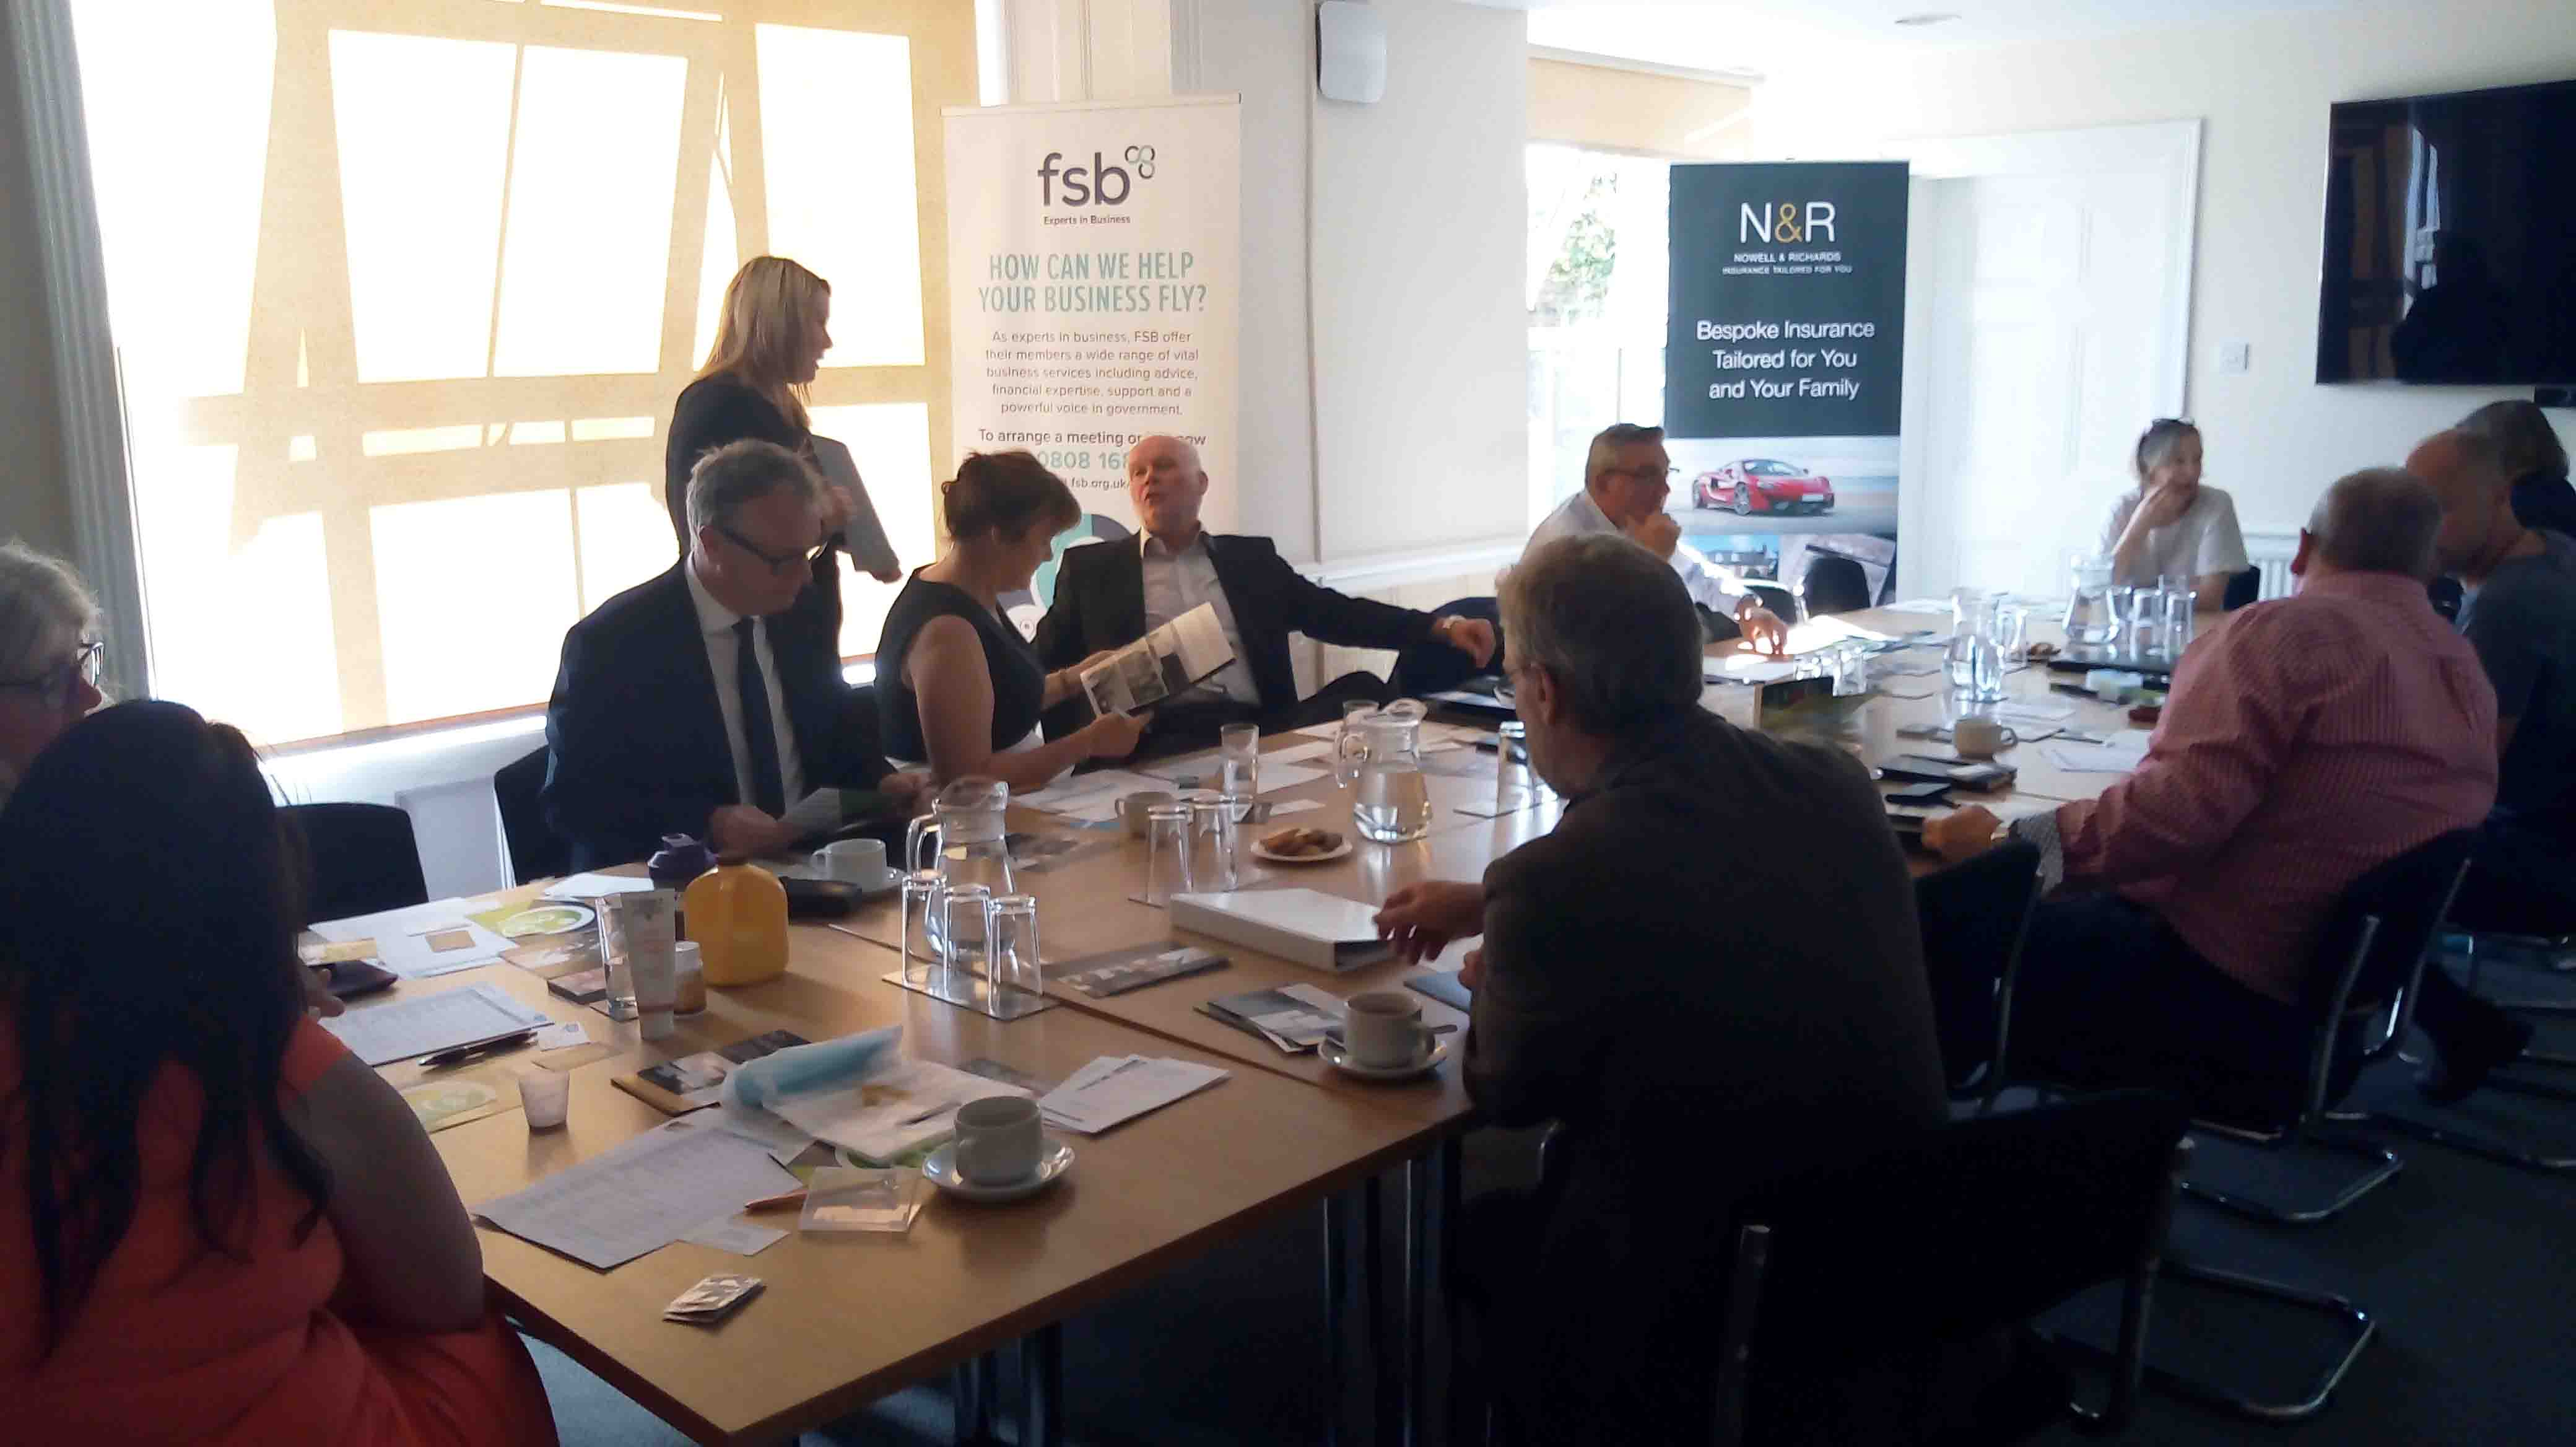 Heath House Conference Centre, Uttoxeter , Network B2B Visitors networking event 26june2018